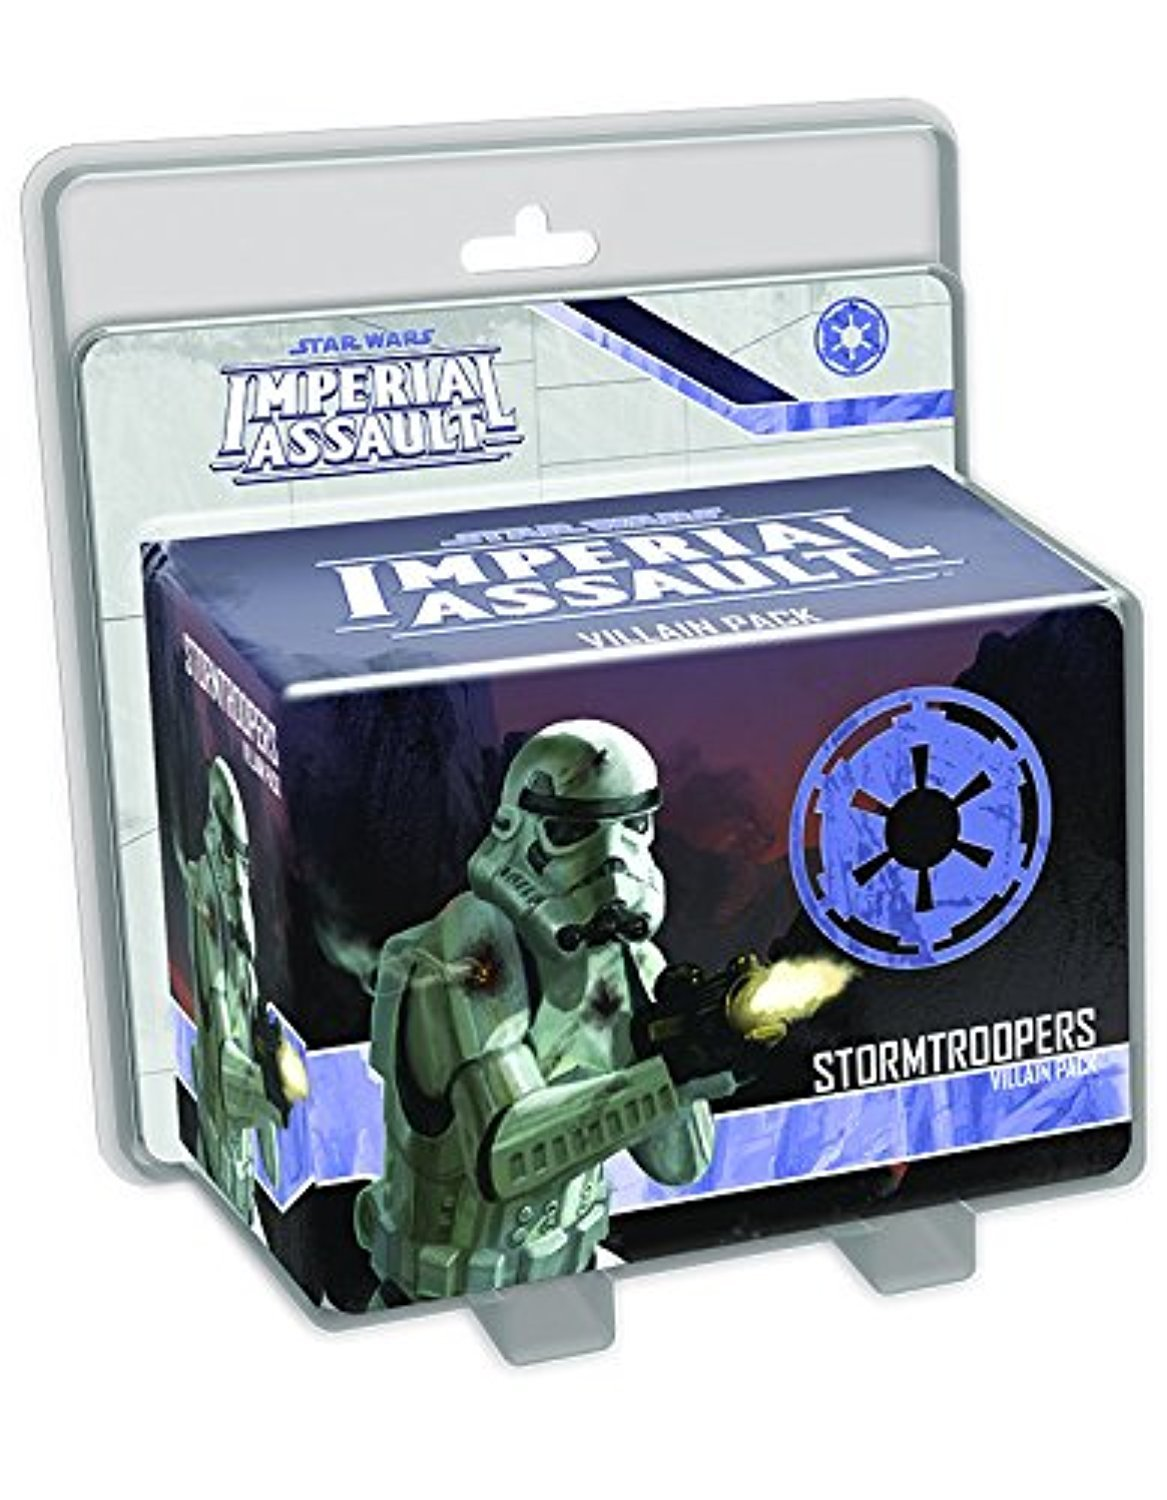 Imperial Assault Stormtroopers Villain Pack